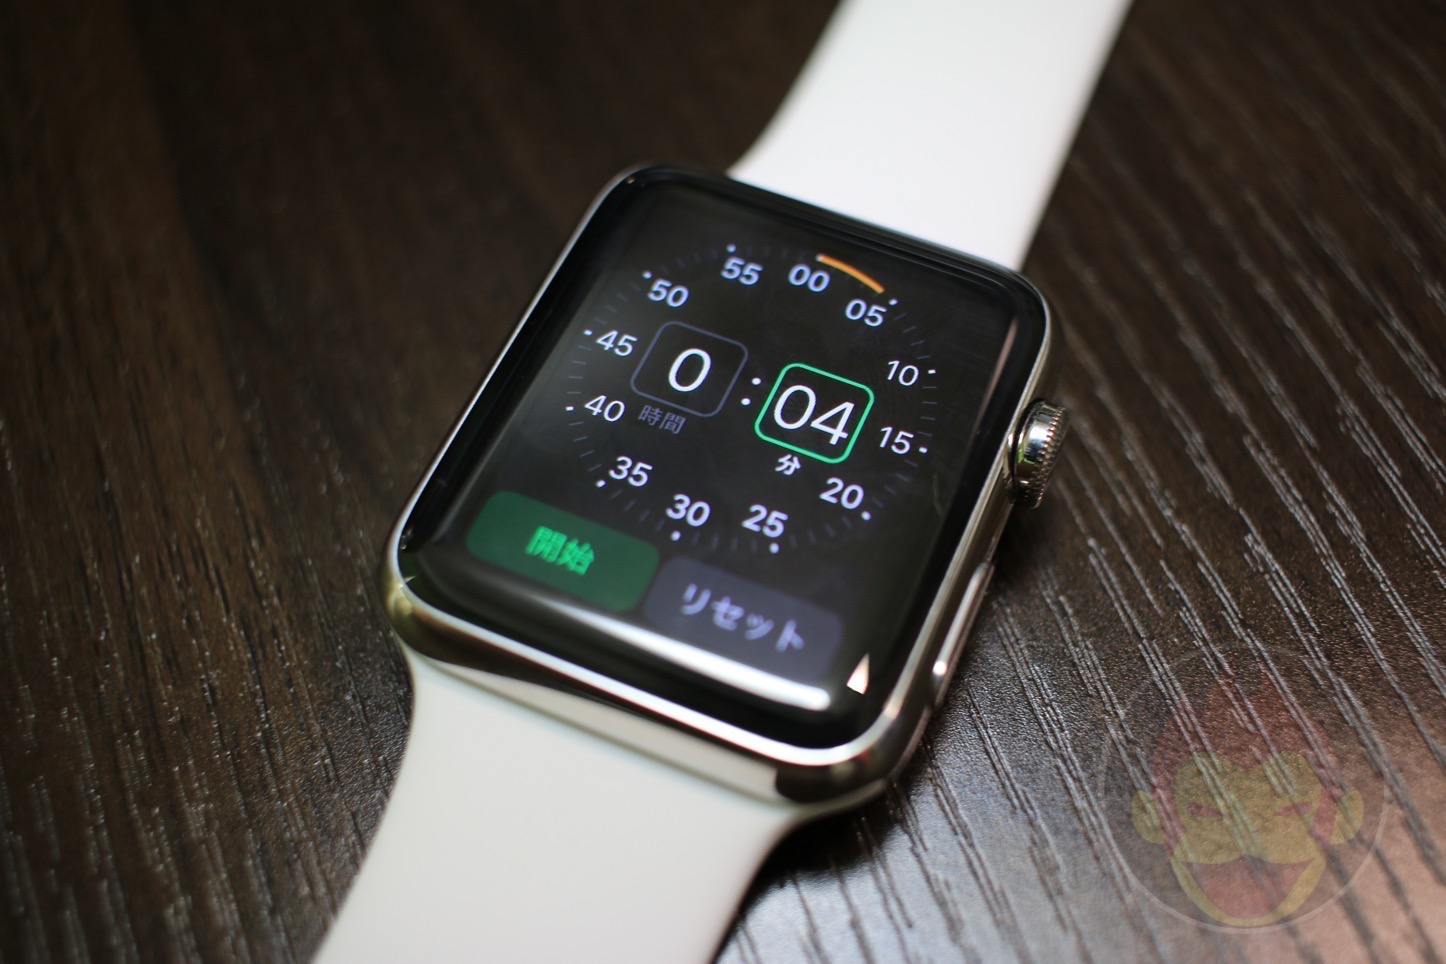 Apple Watch Without iPhone